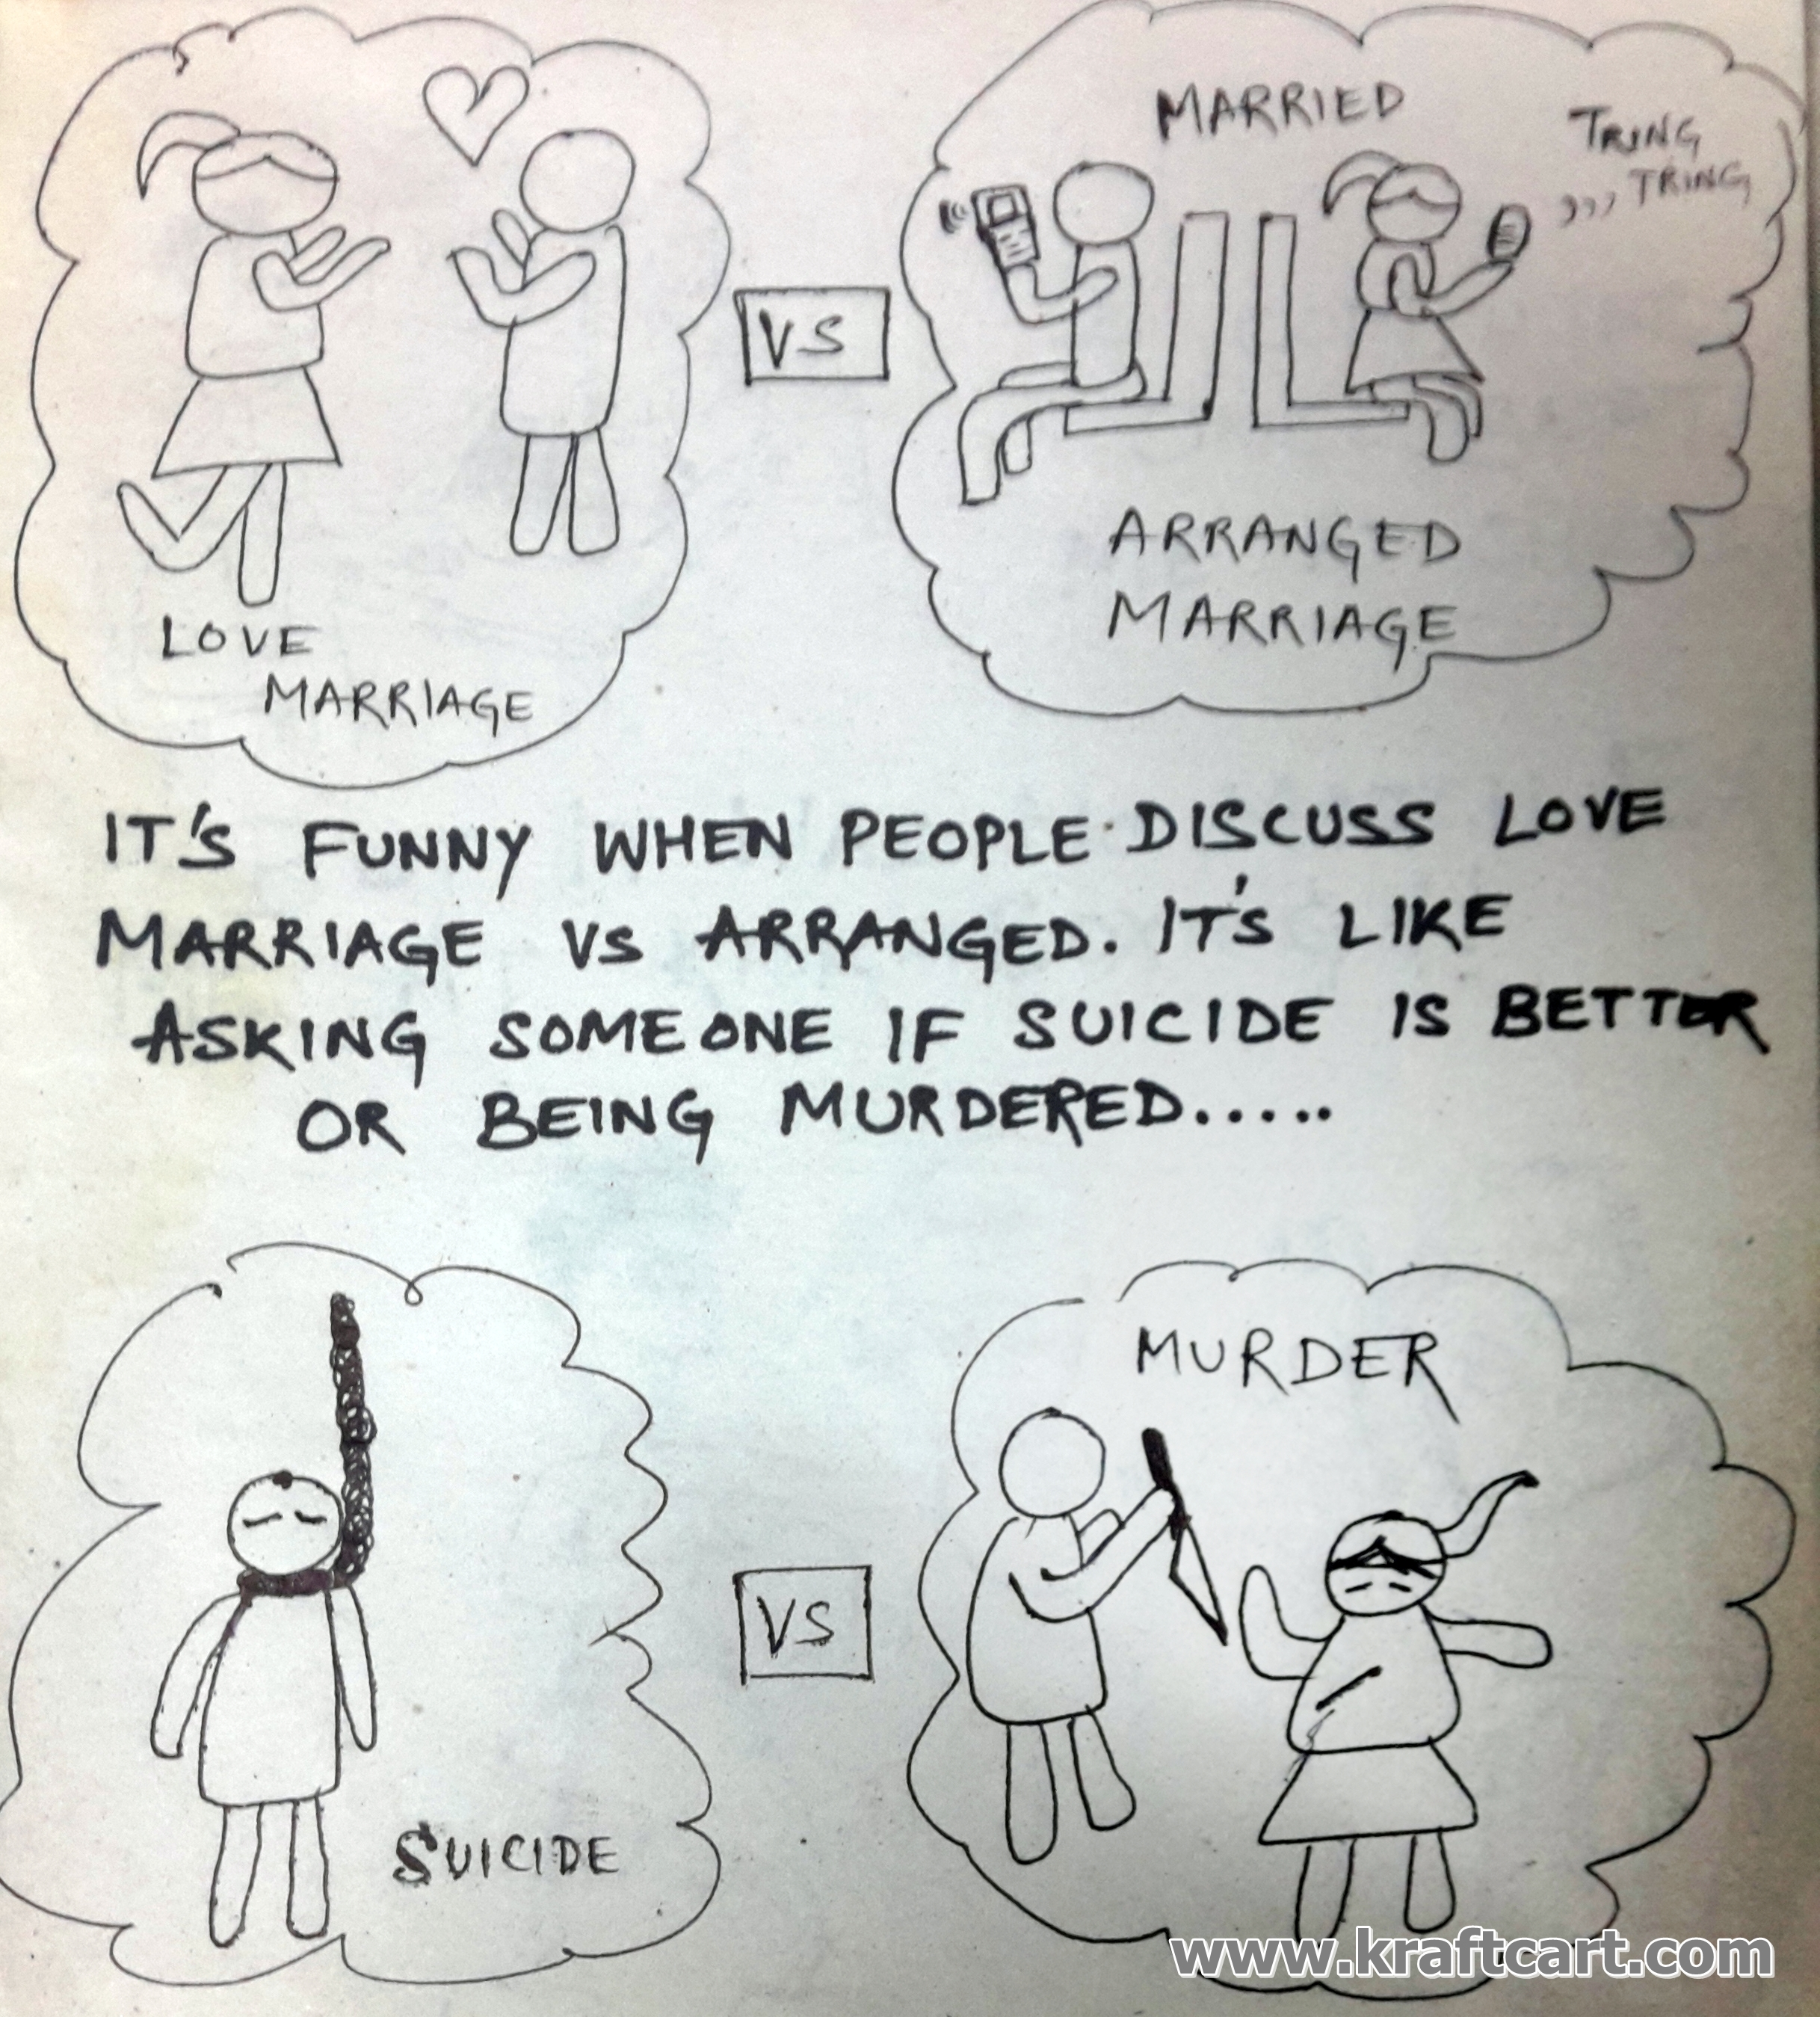 arrange marriage vs love marriage is there any difference